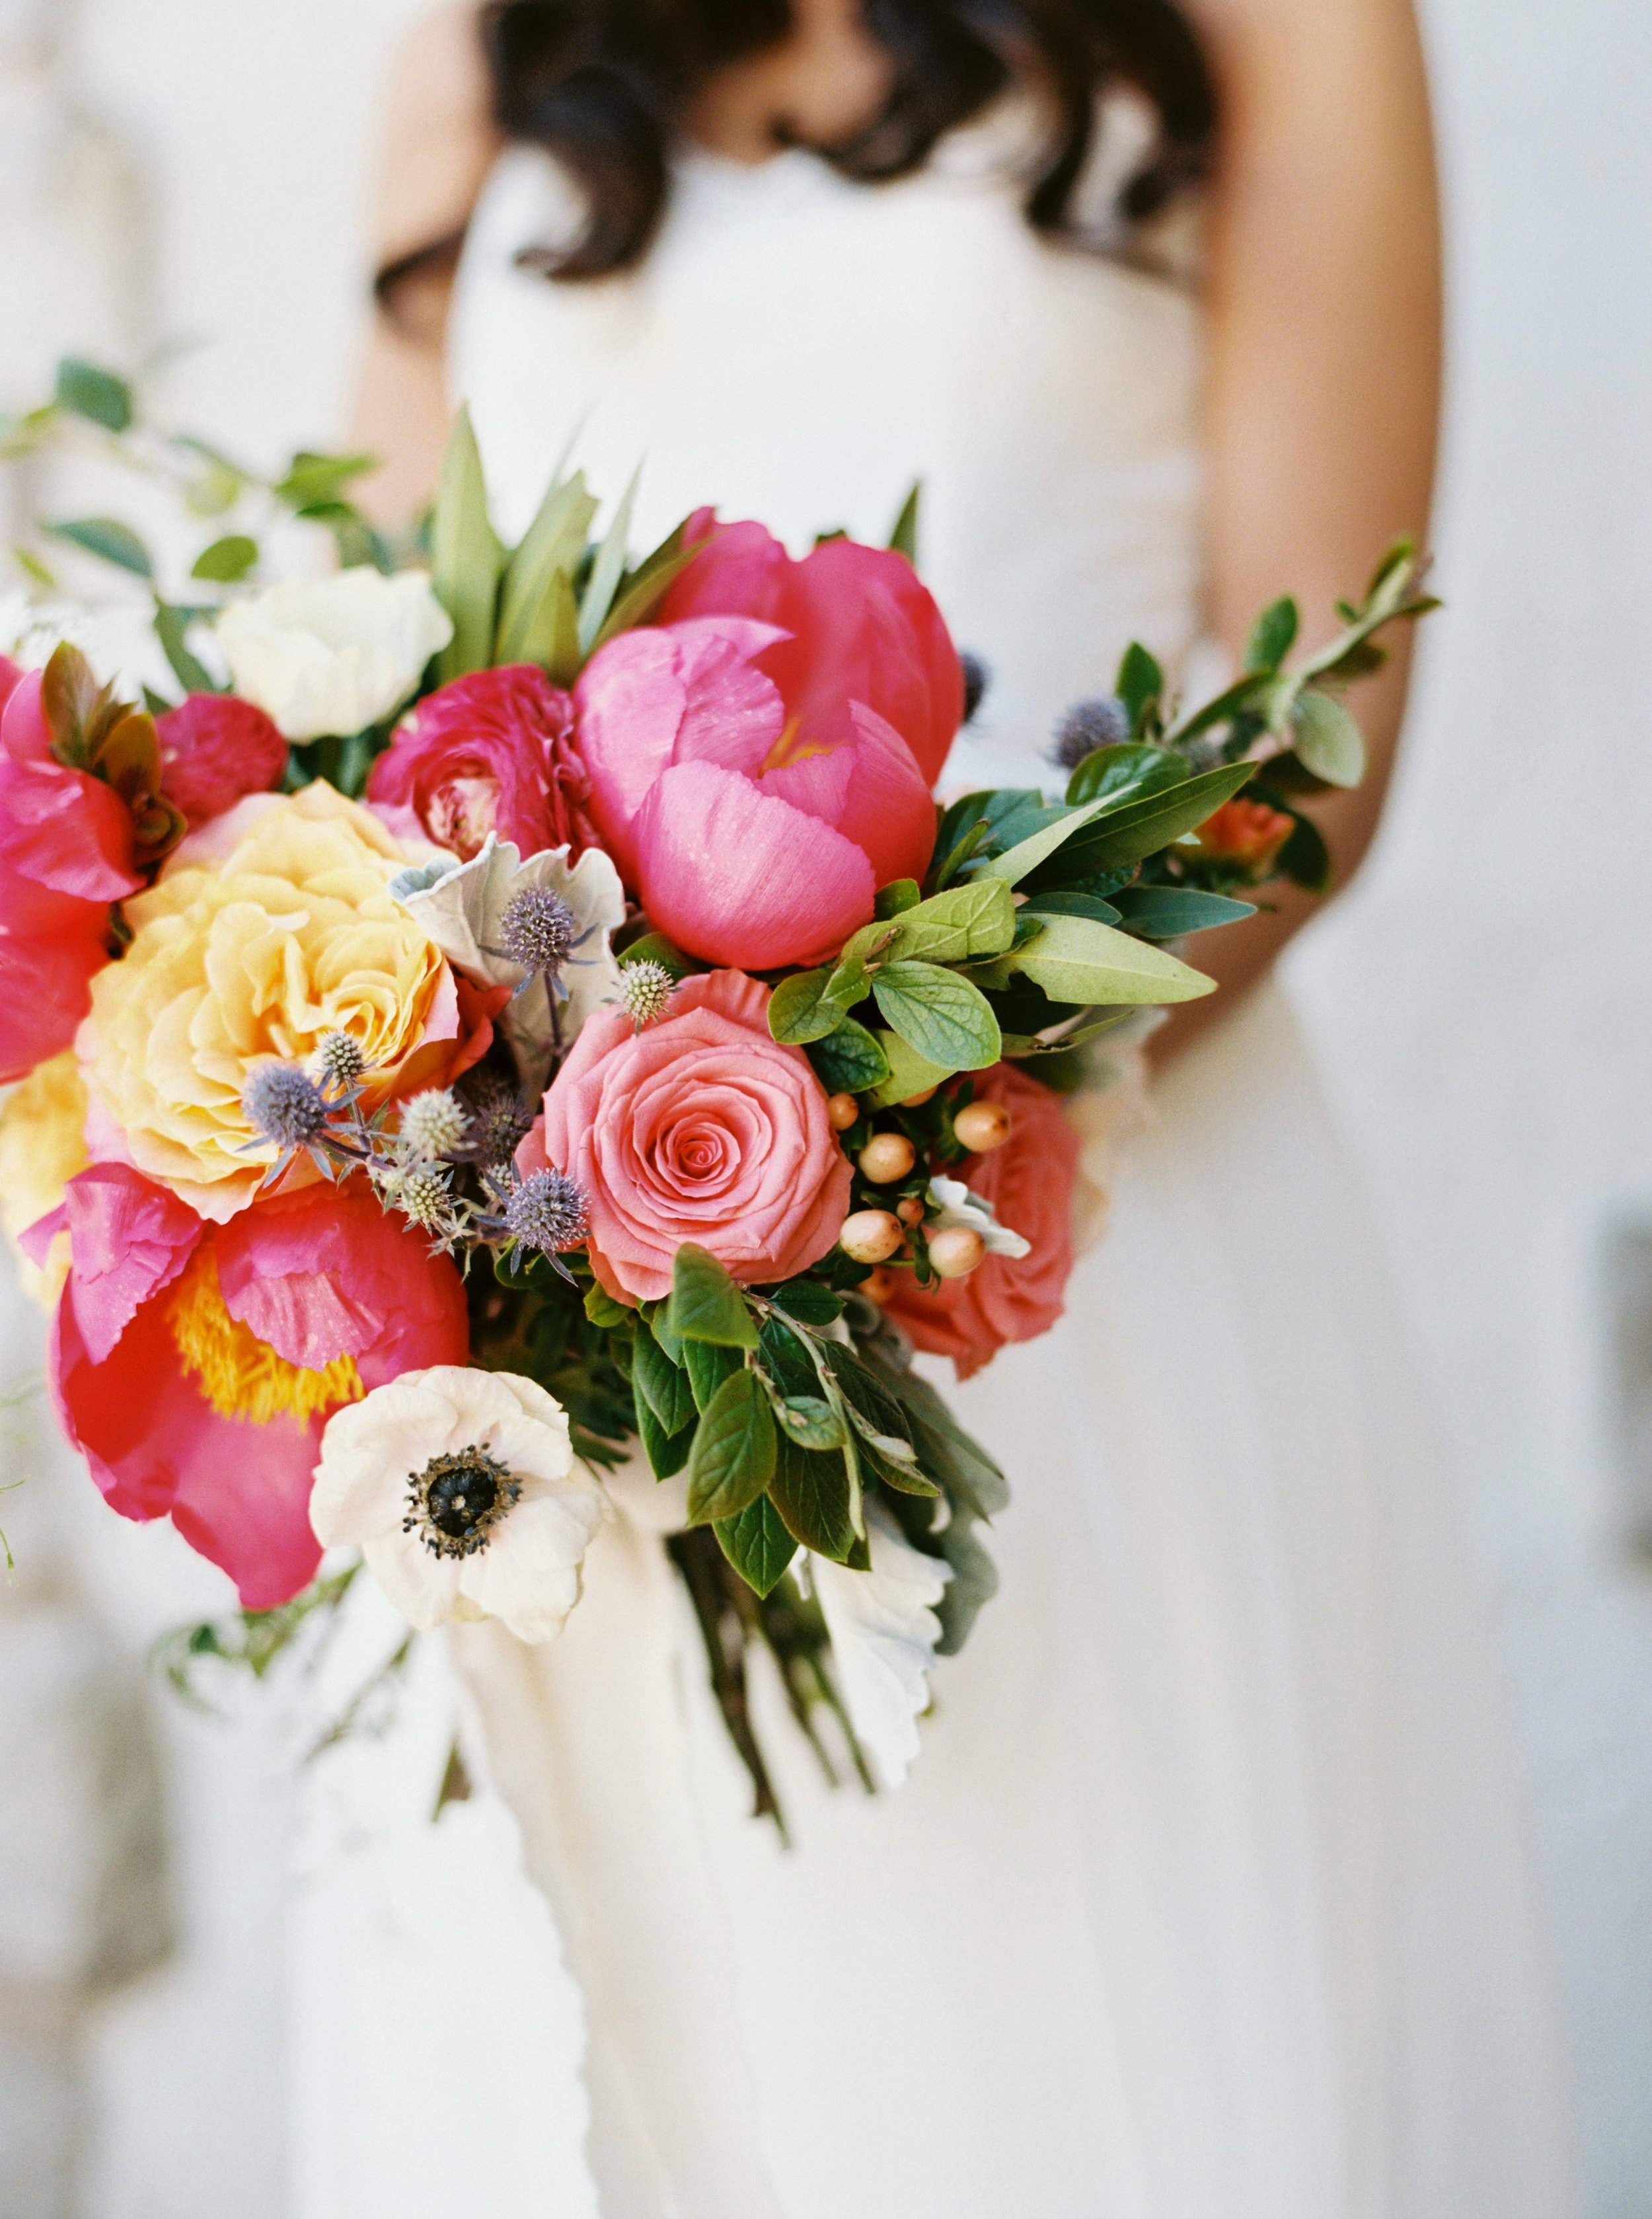 coral and peach wedding bouquet with peonies.jpg